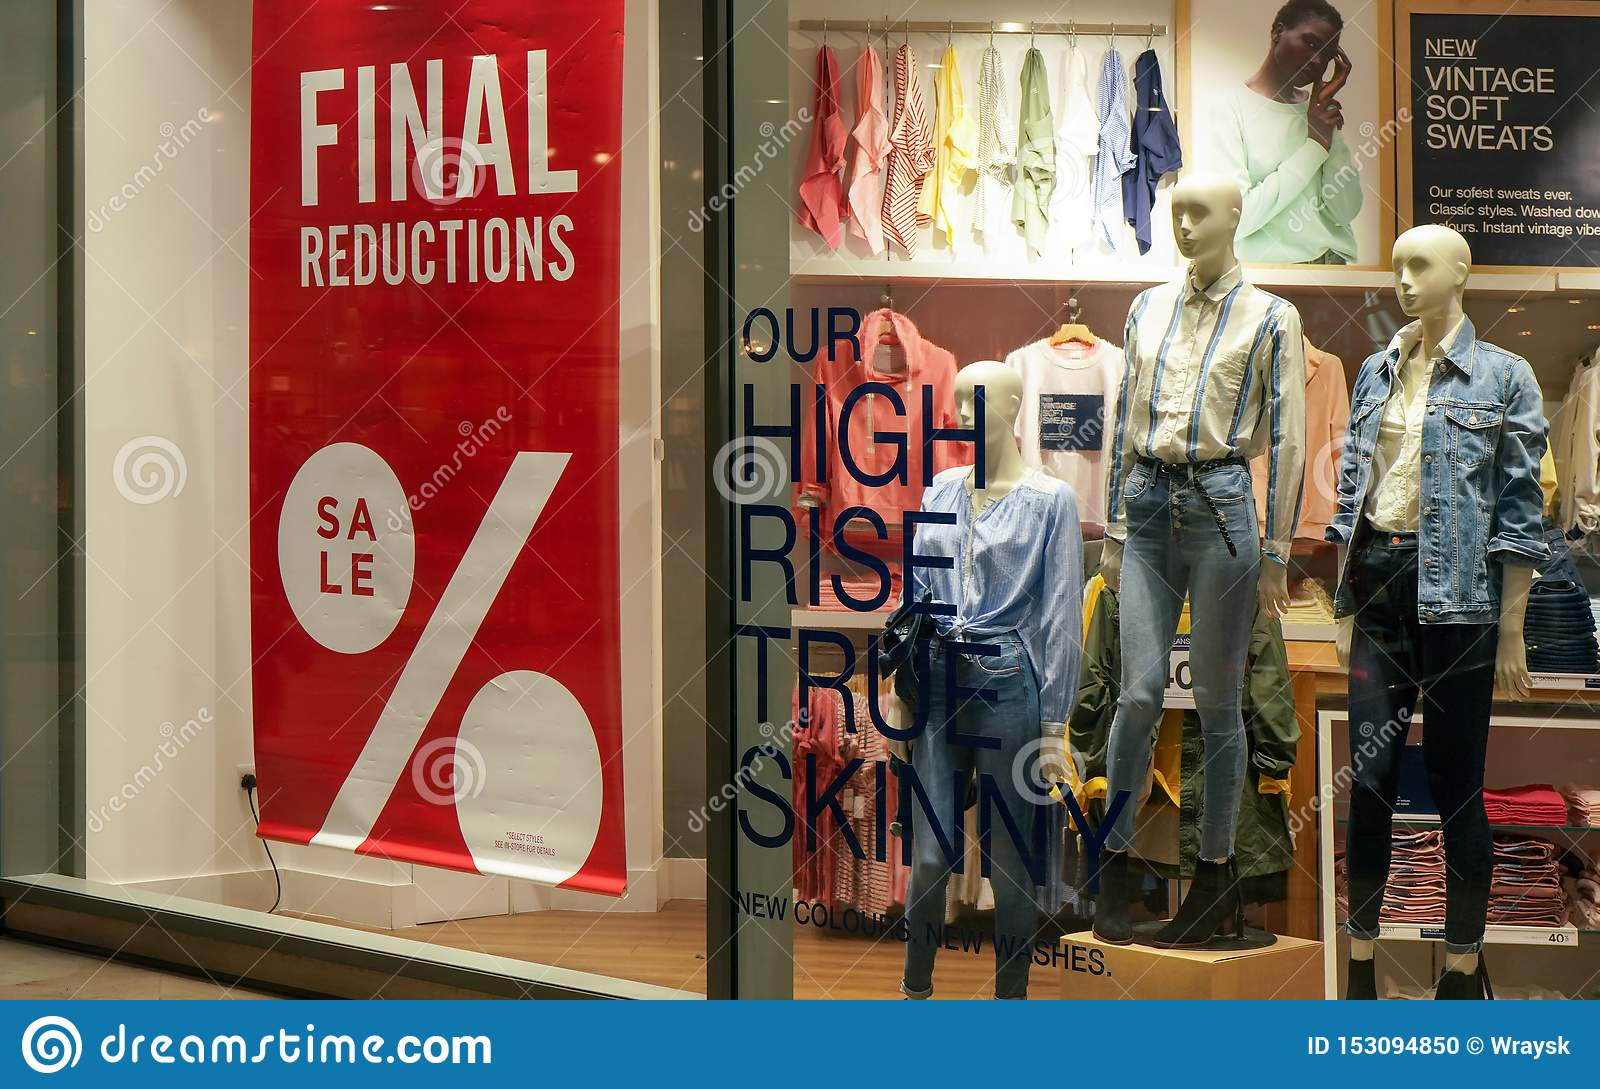 London, United Kingdom - February 01, 2019: Final reductions sale sign at fashion store window. Goods are usually reduced in price